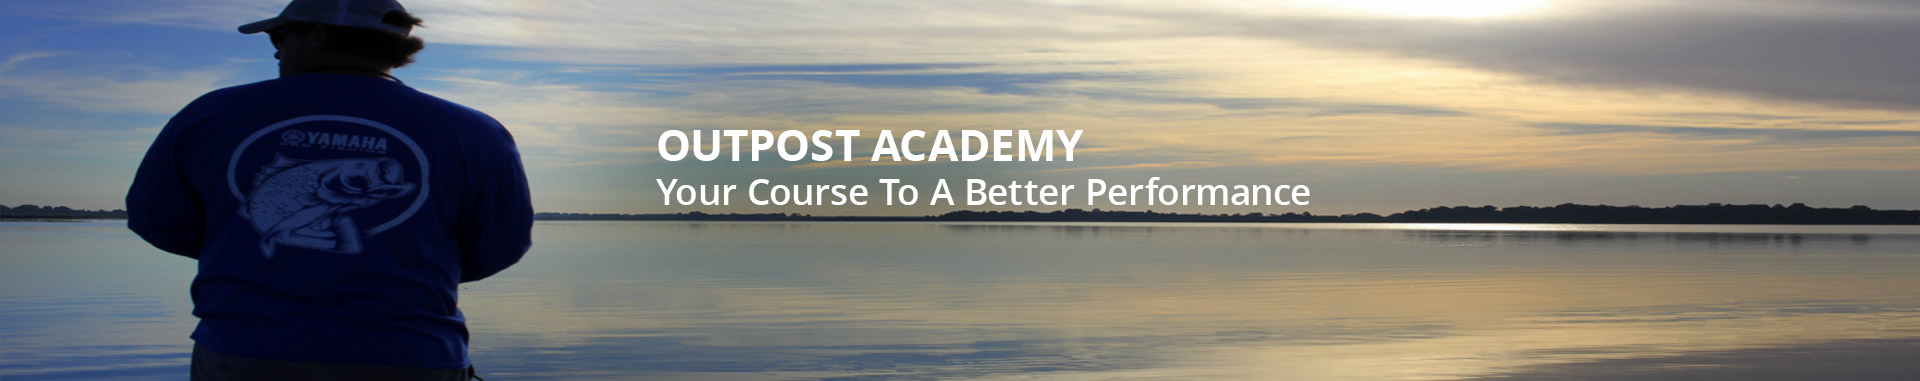 OUTPOST ACADEMY Your Course To A Better Performance